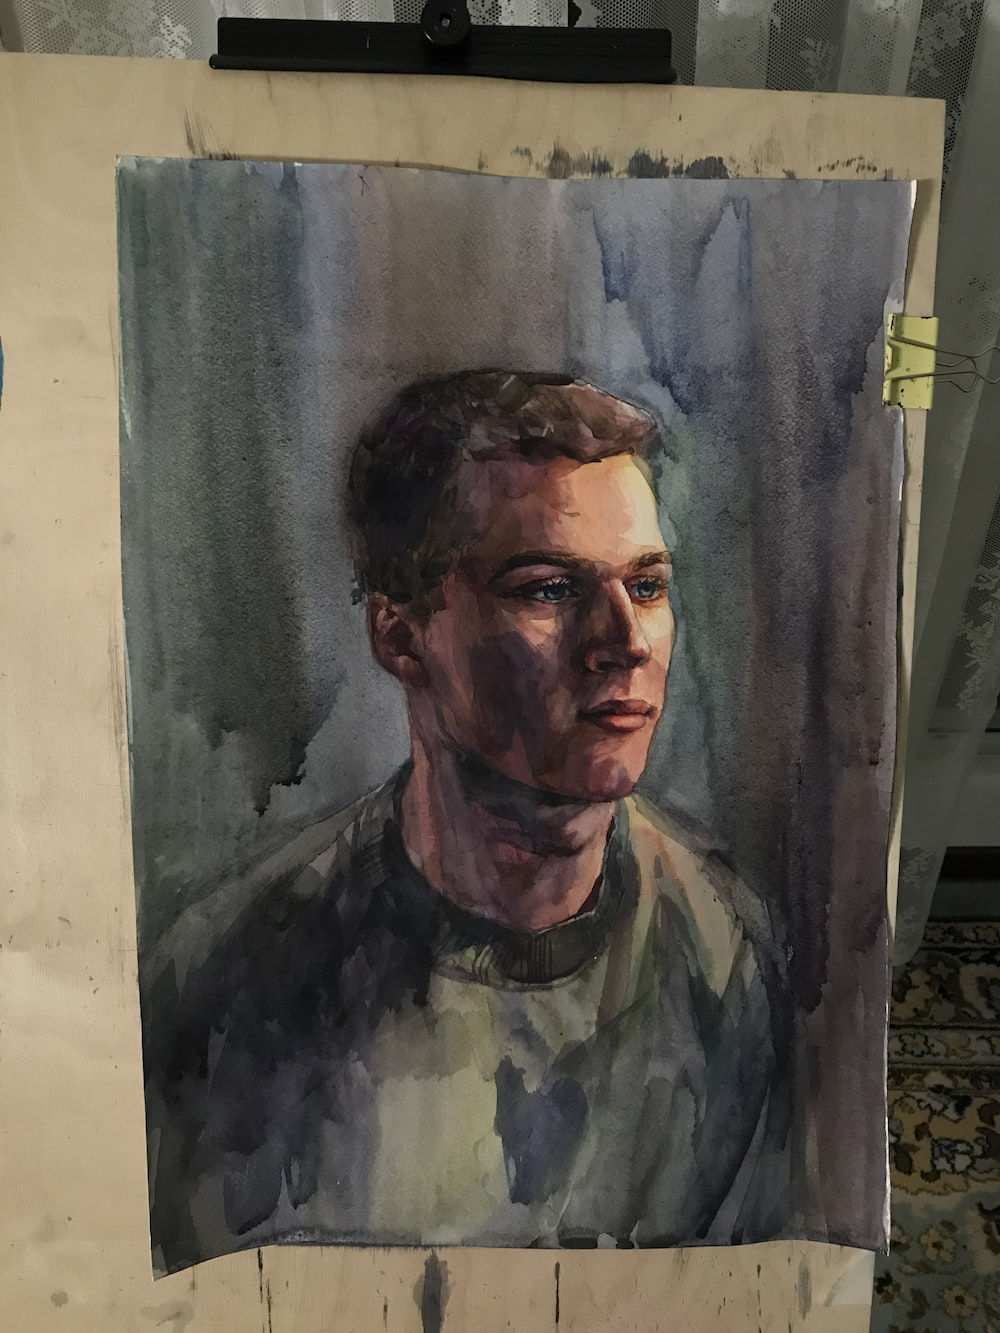 man in grey crew neck shirt portrait painting